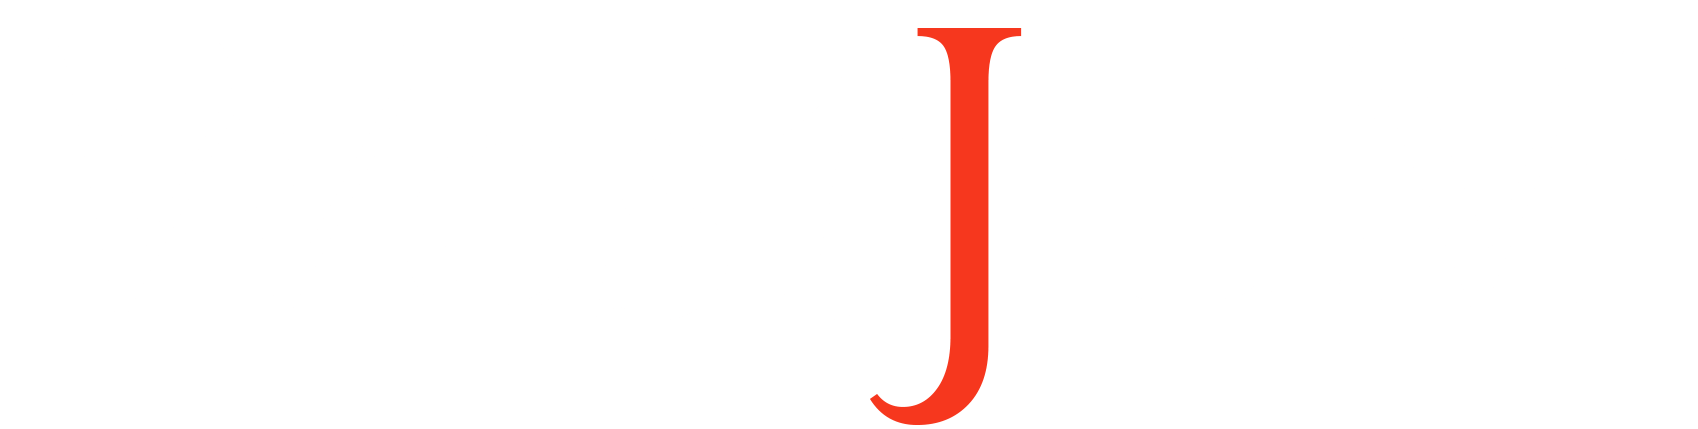 About Journal - The Western Journal of Emergency Medicine